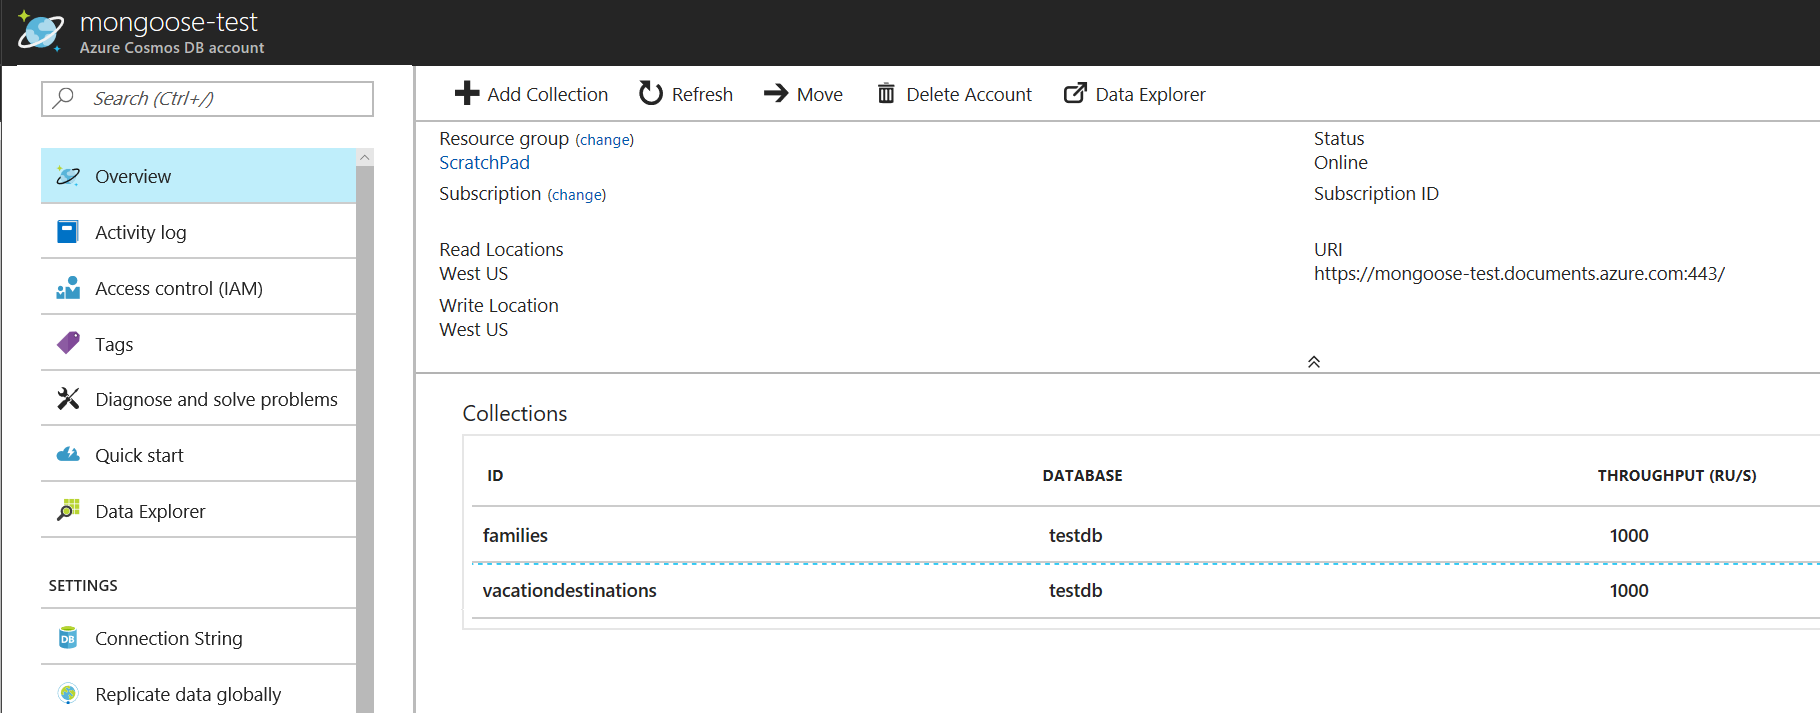 Connect a Node js Mongoose application to Azure Cosmos DB